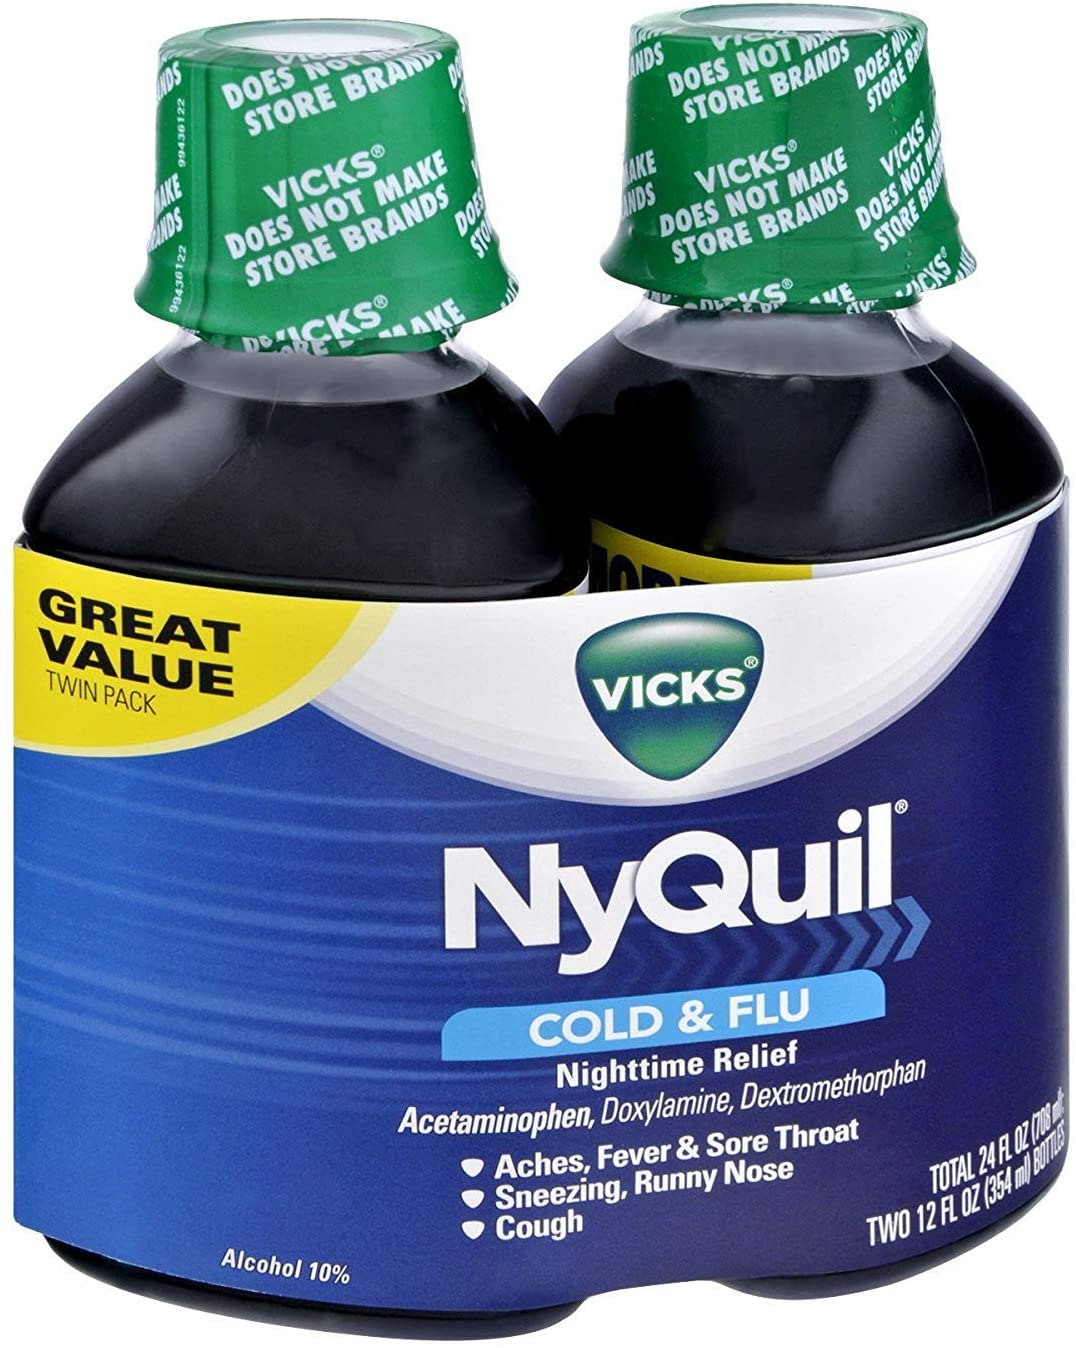 Vicks NyQuil Cold Flu Nighttime Orig Washington Mall Liquid Pack Relief Animer and price revision Twin